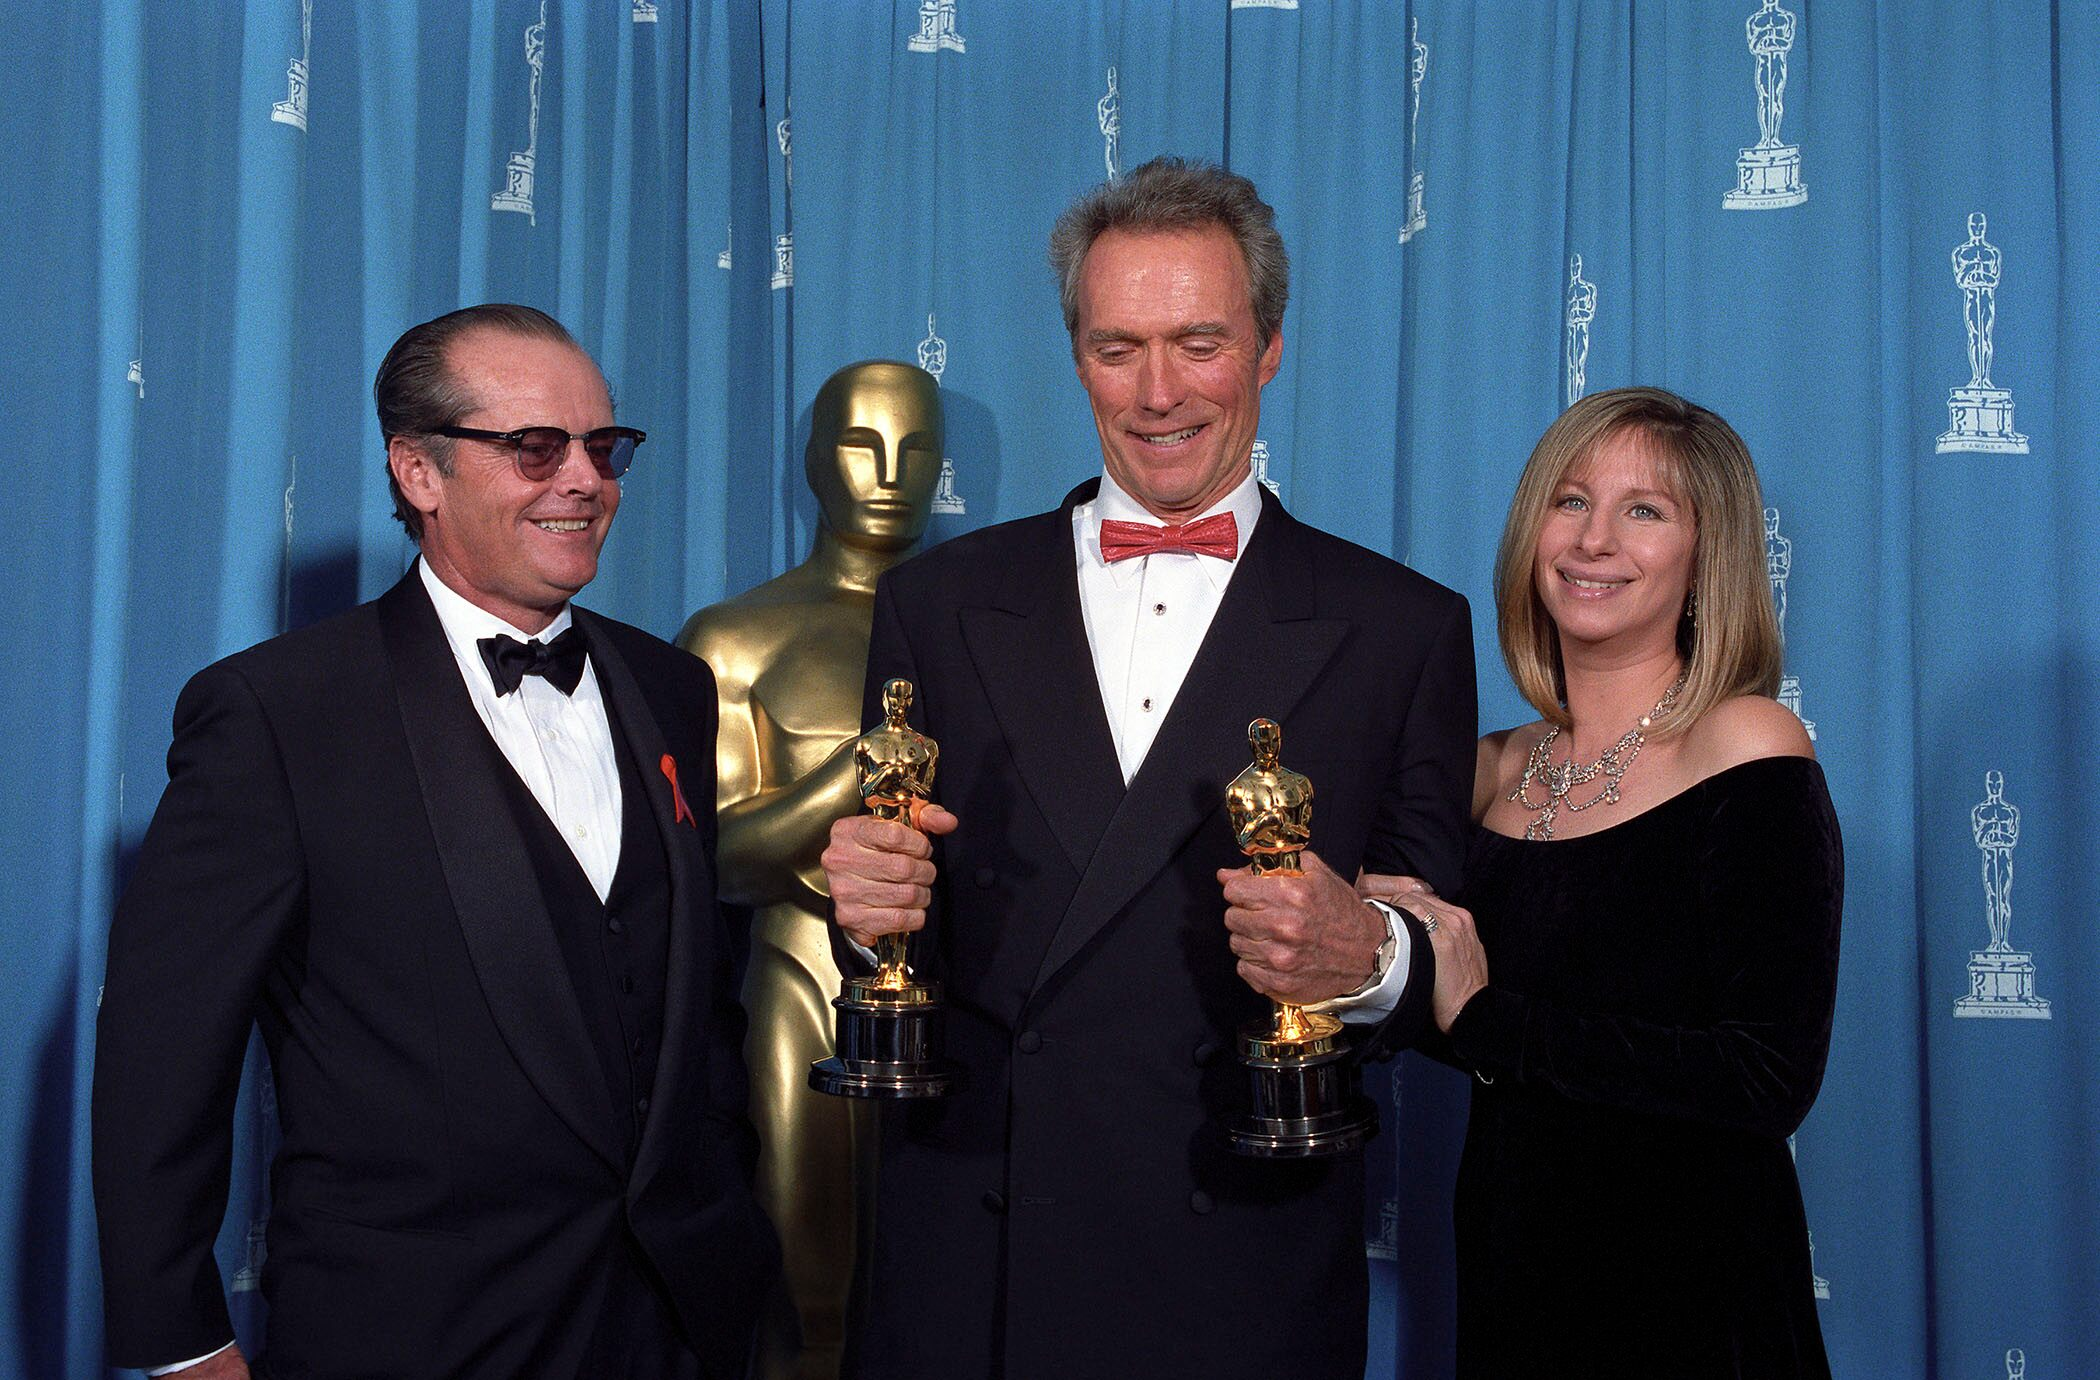 Jack Nicholson, Clint Eastwood and Barbra Streisand